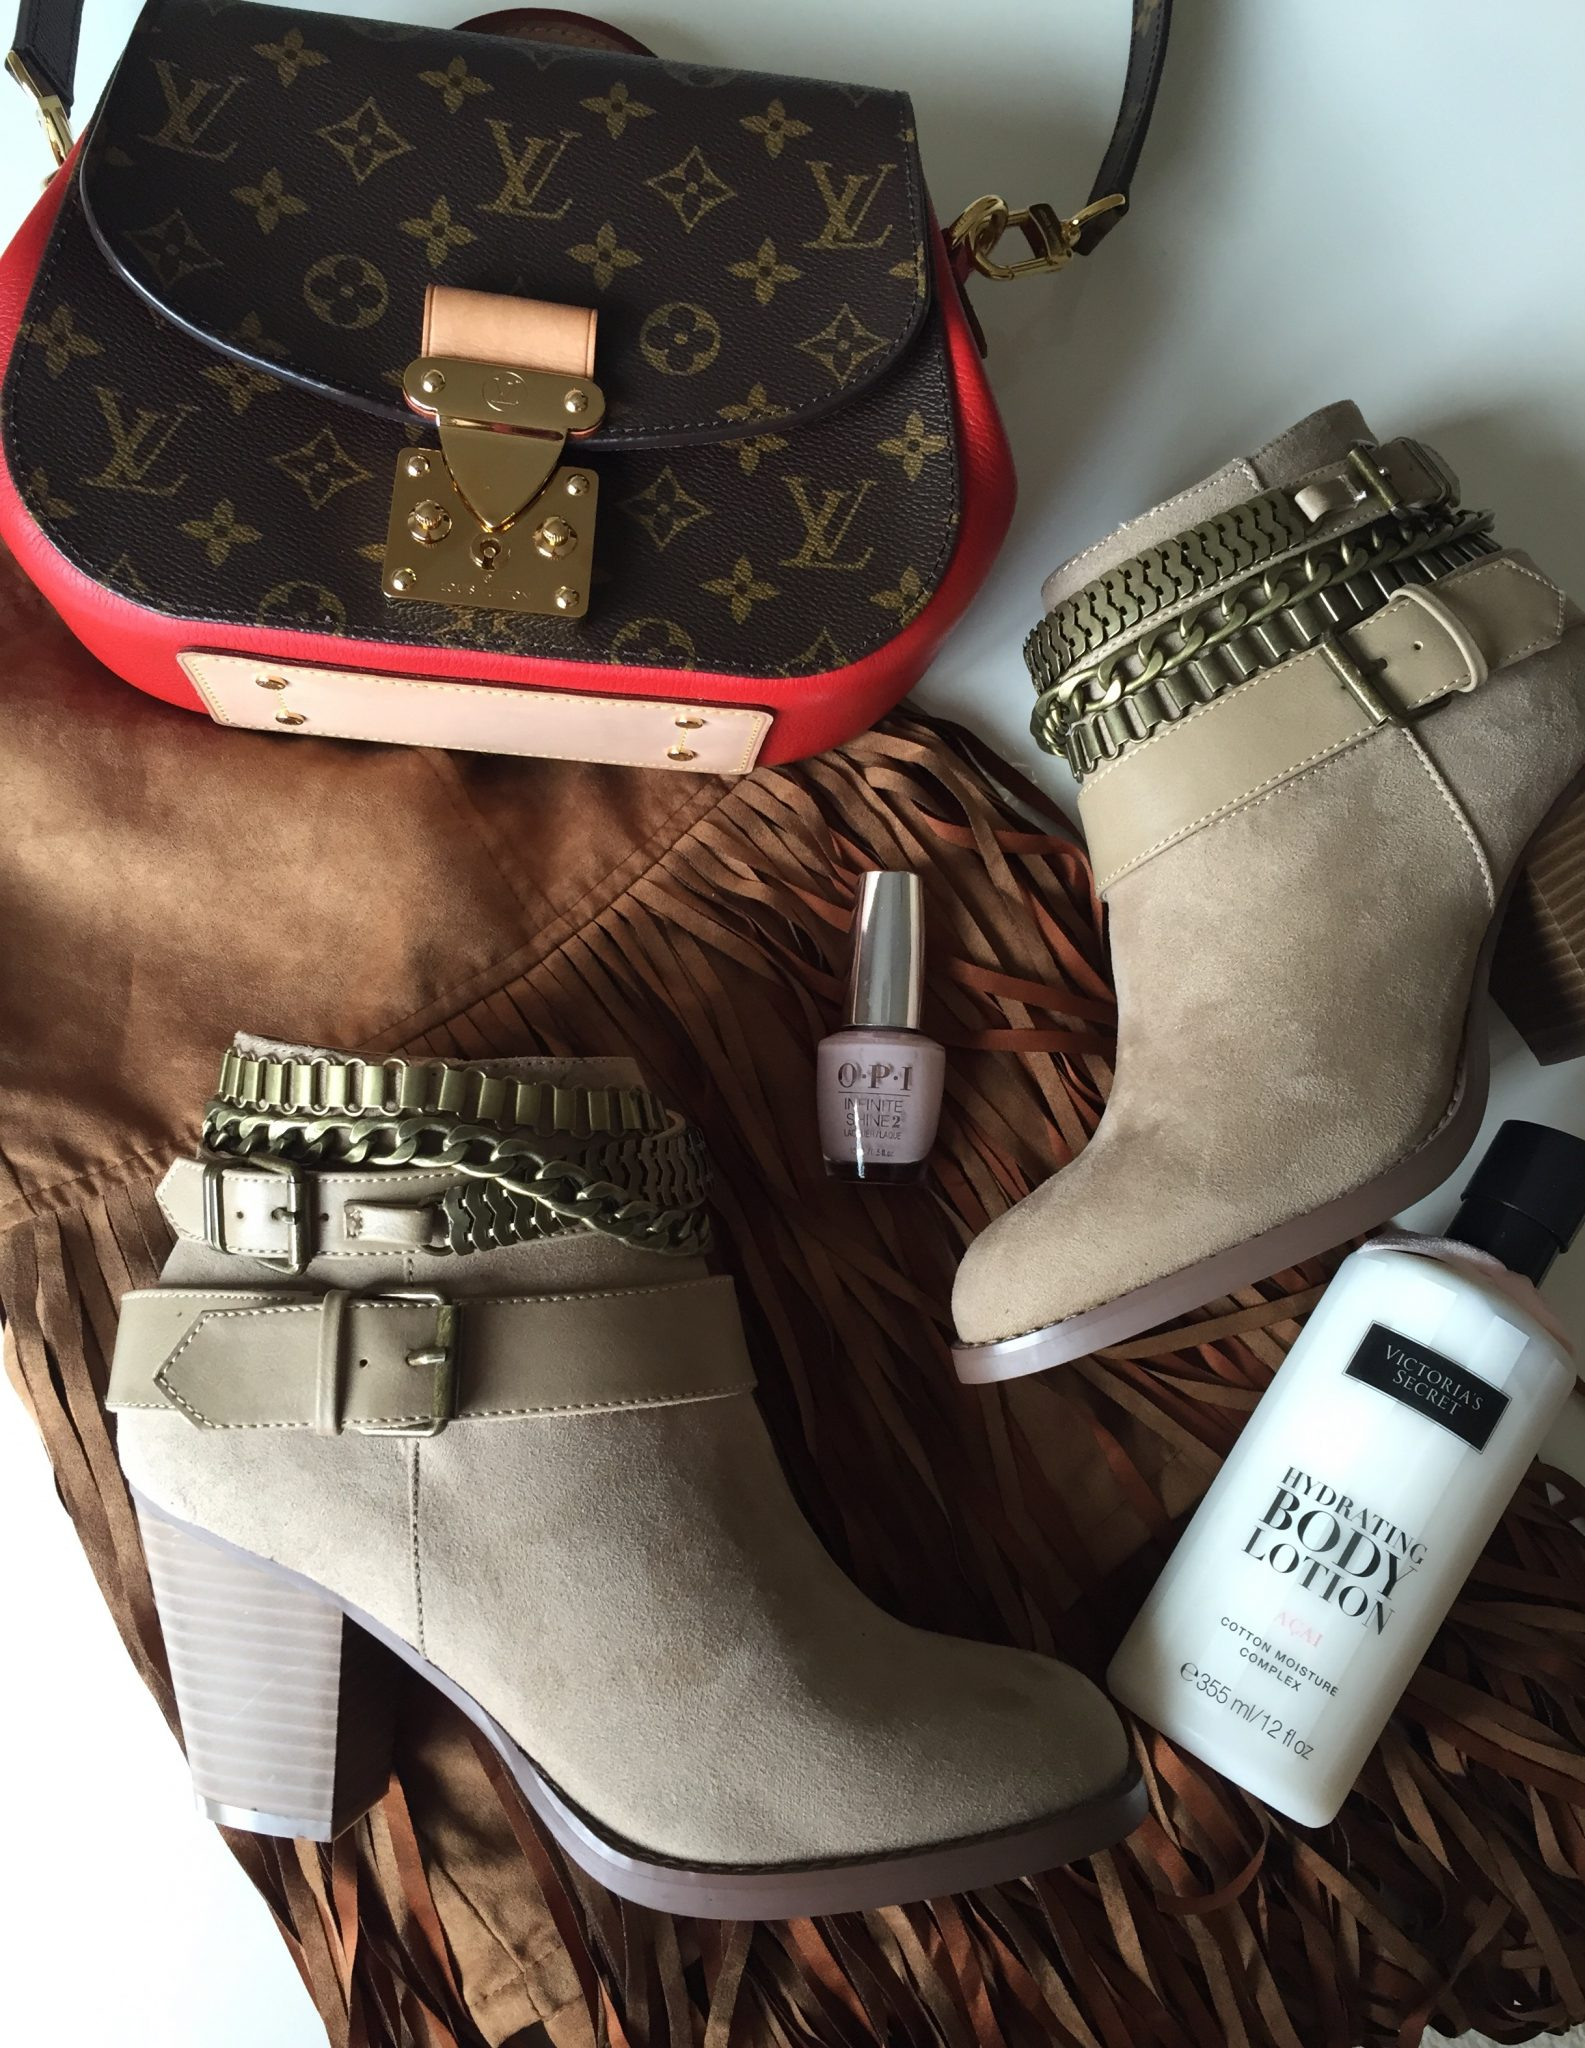 Fashion And Beauty Items I'm Currently Loving